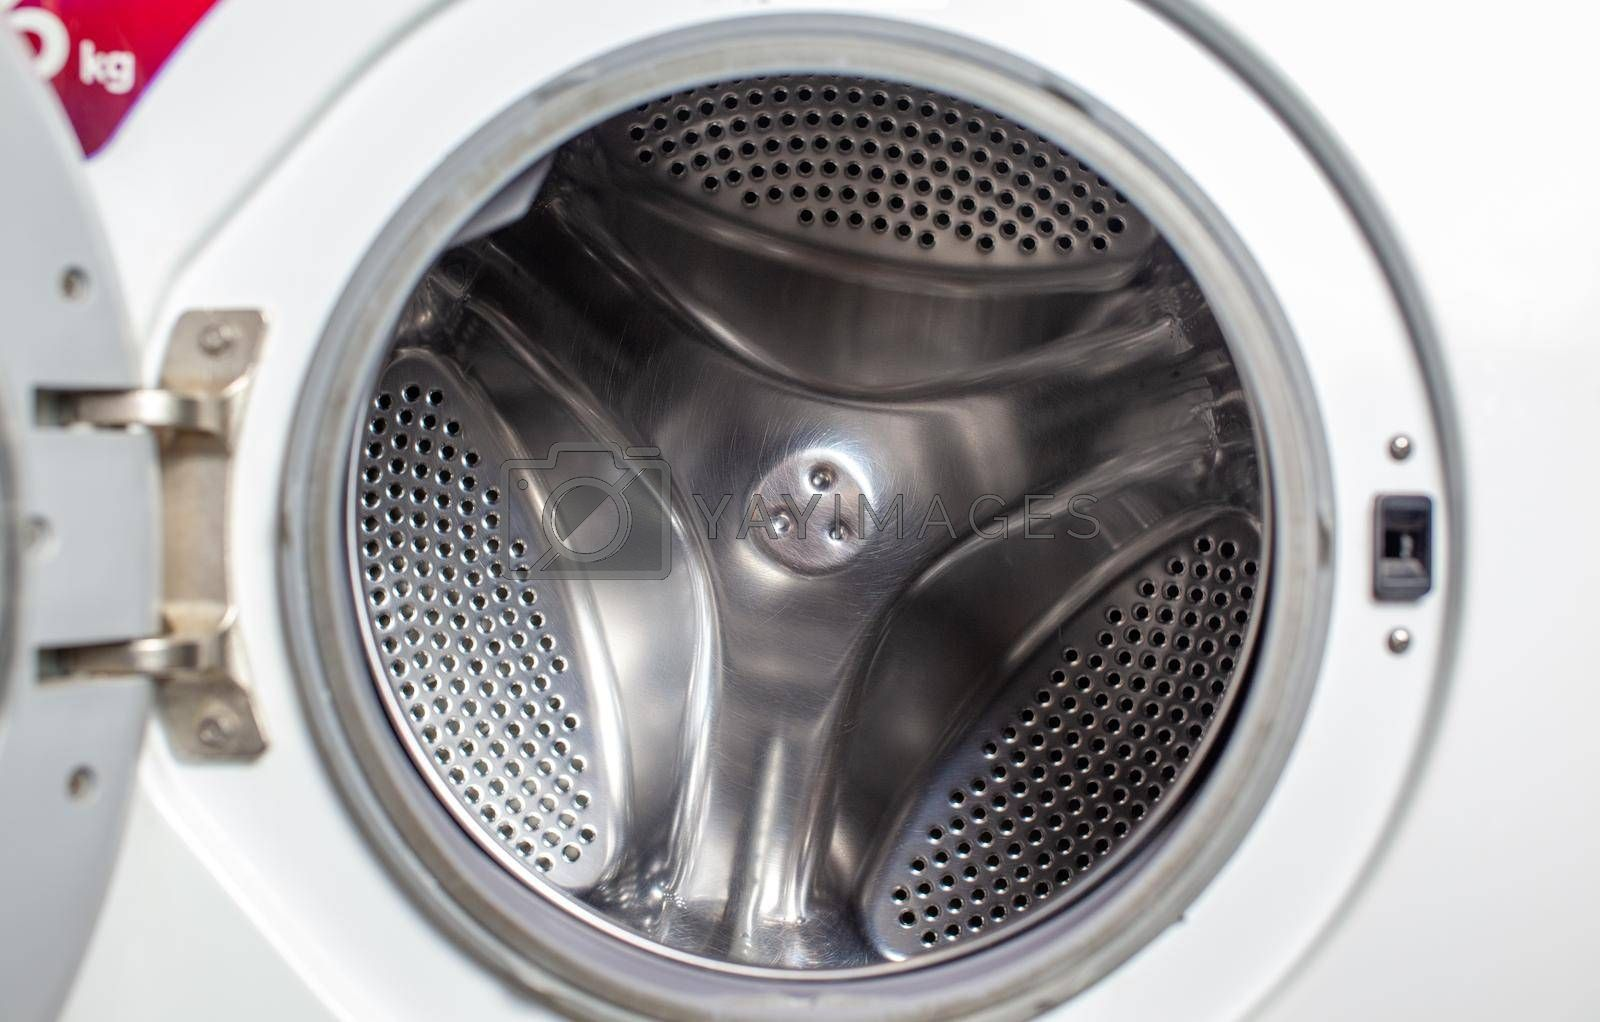 Drum of washing machine dry and clean close-up. by AnatoliiFoto